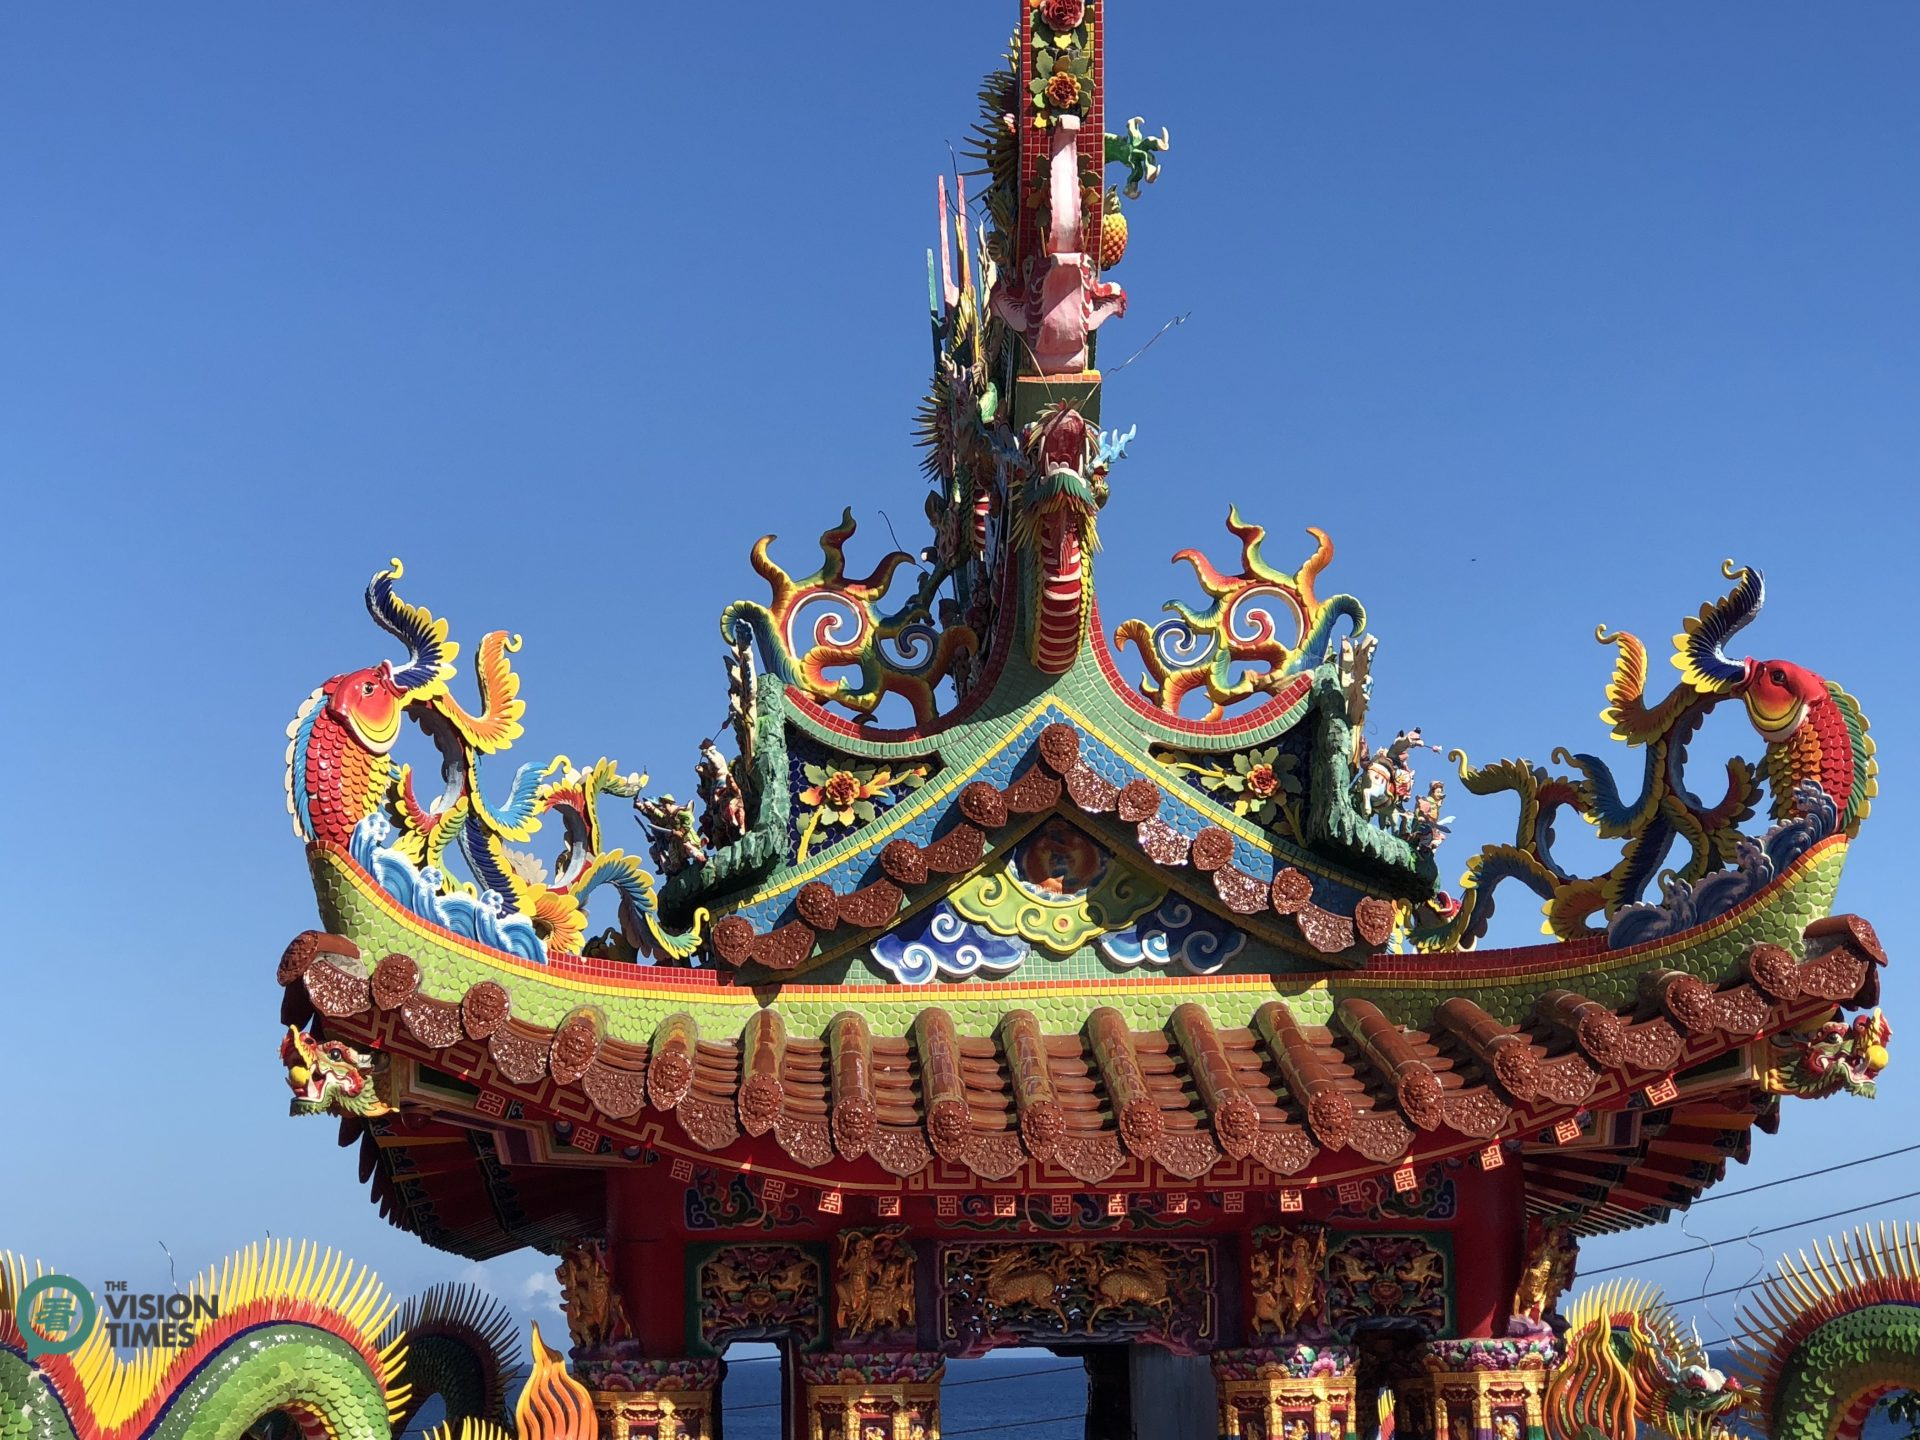 There are over 80 temples on Liuqiu and most of them have beautiful sculptures on the roof. (Image: Billy Shyu / Vision Times)